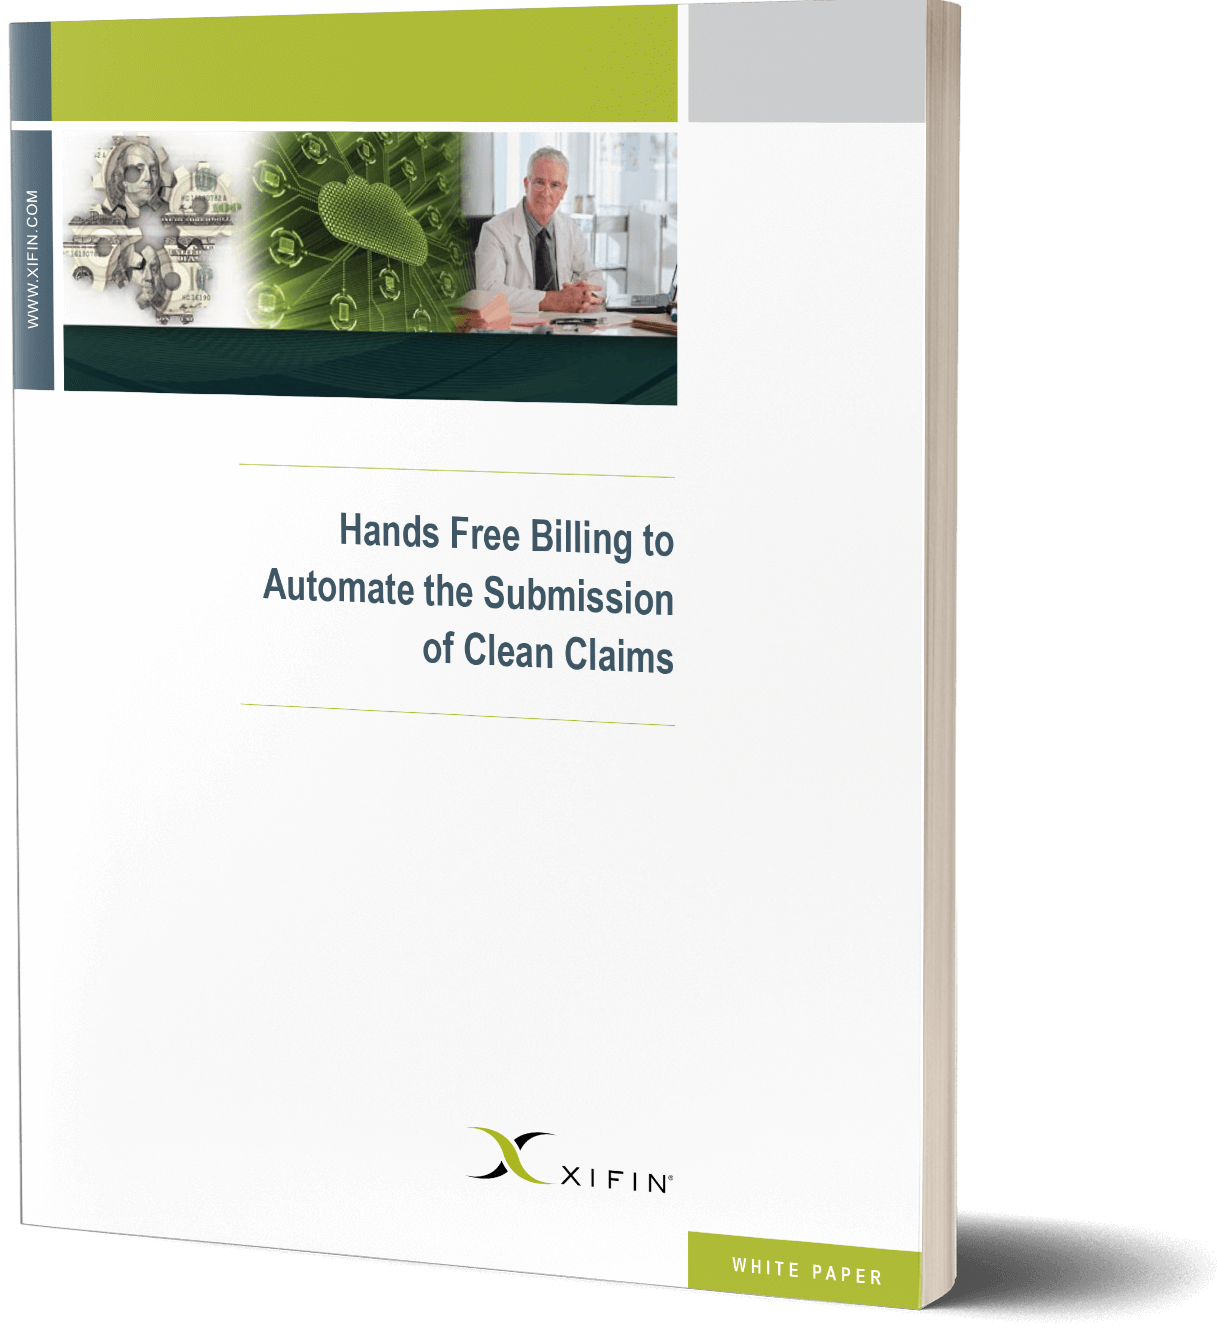 Hands Free Billing to Automate the Submission of Clean Claims